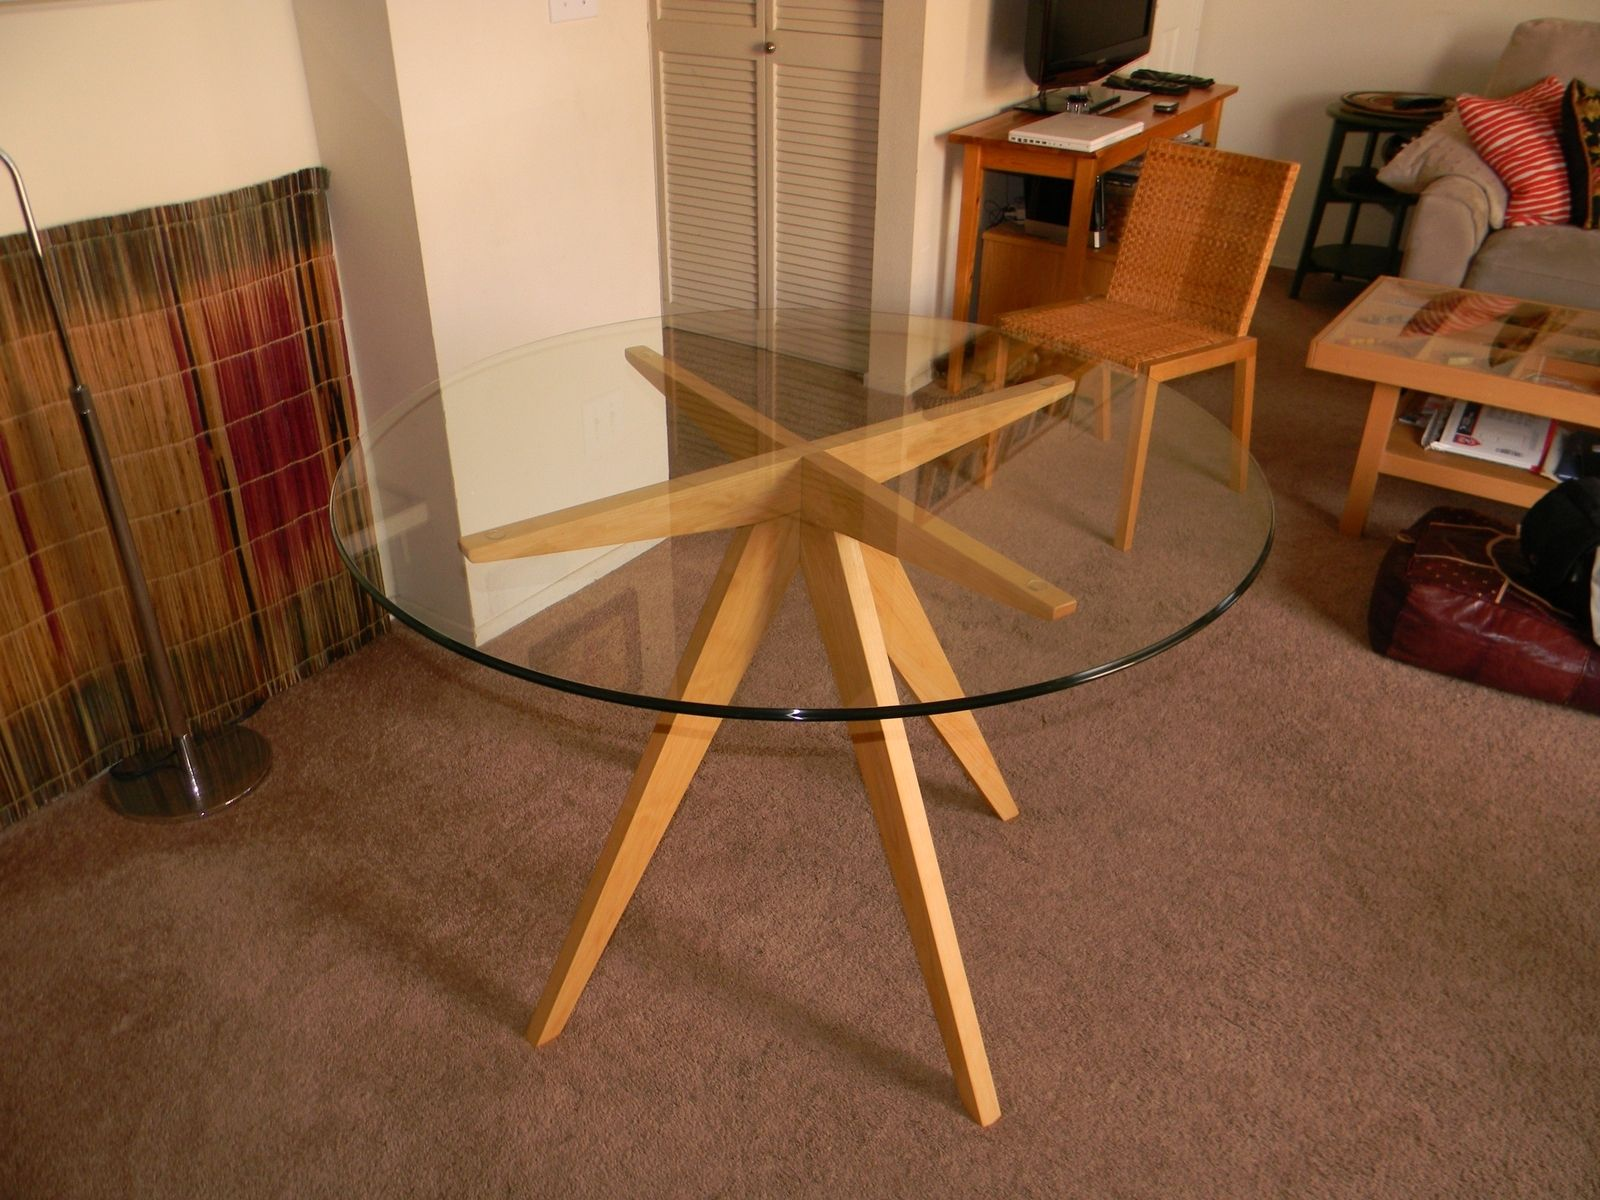 custom made ibis table base for glass top dining table - Glass Round Dining Table